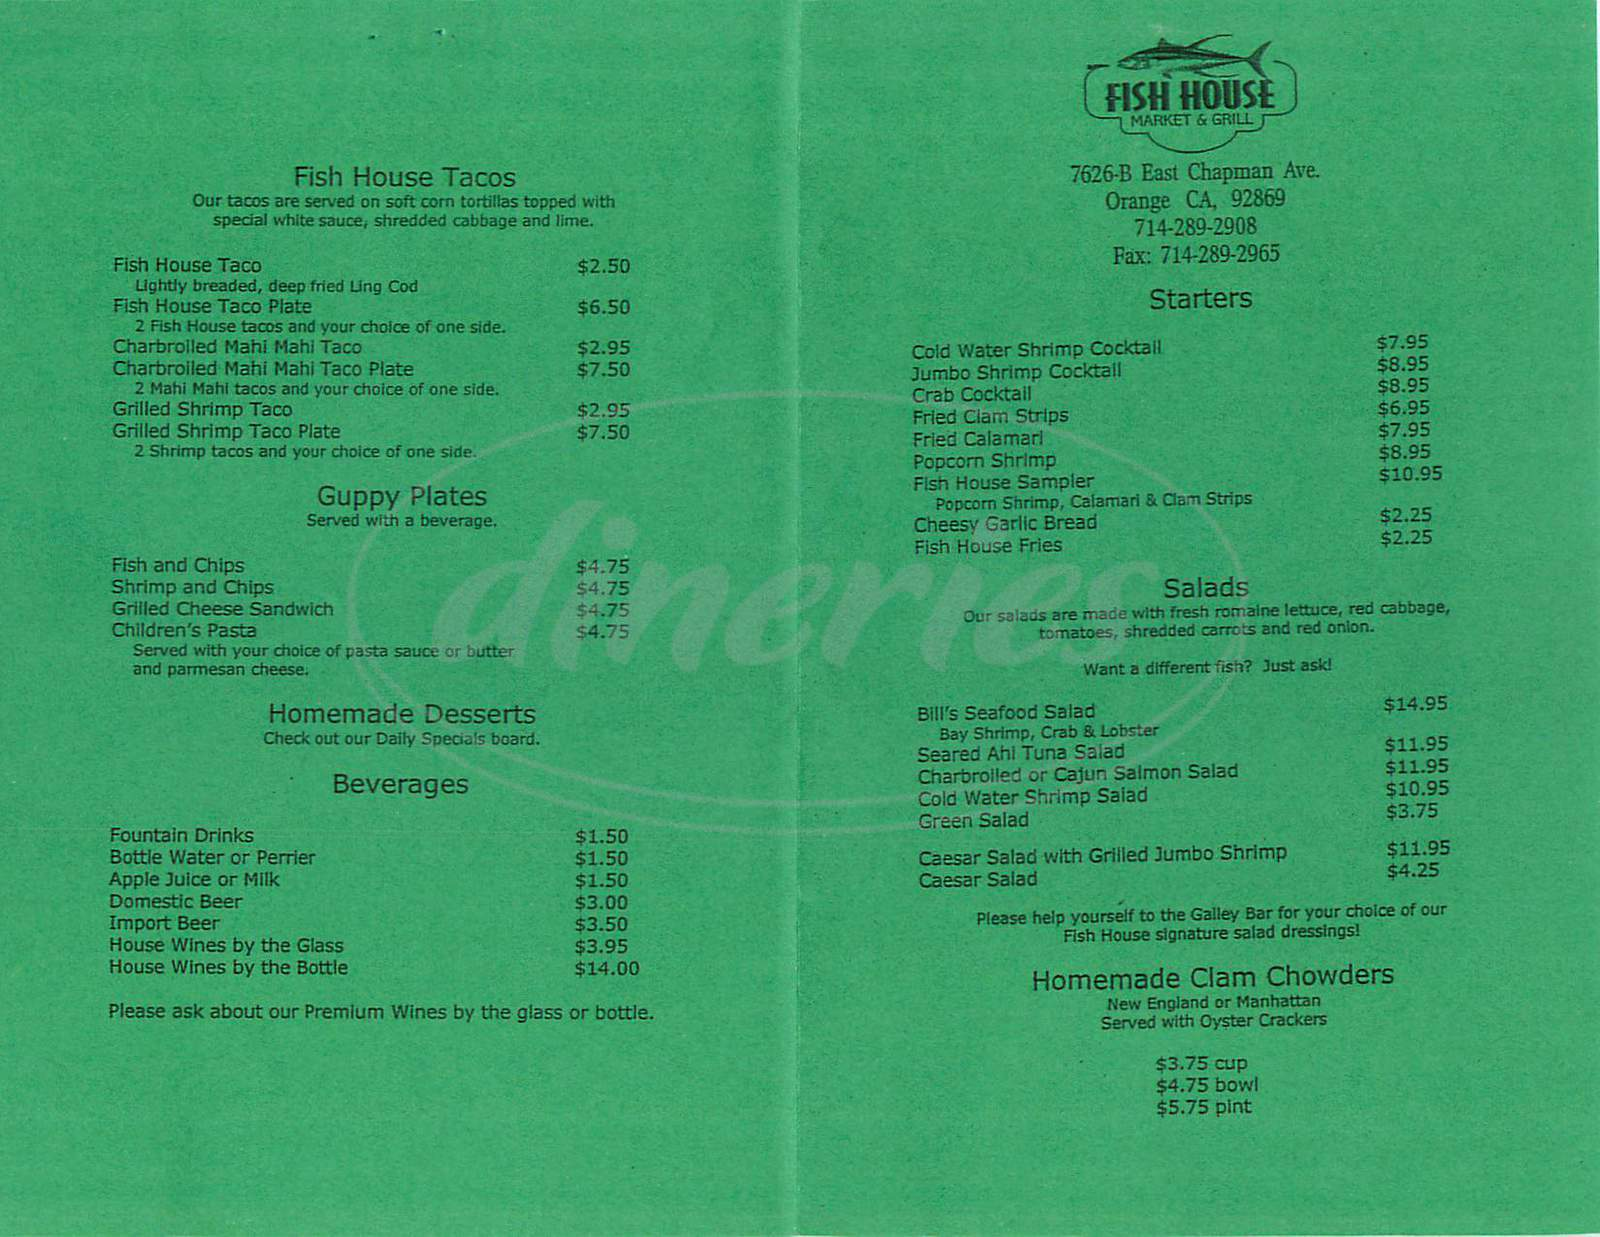 menu for Fish House Market & Grill